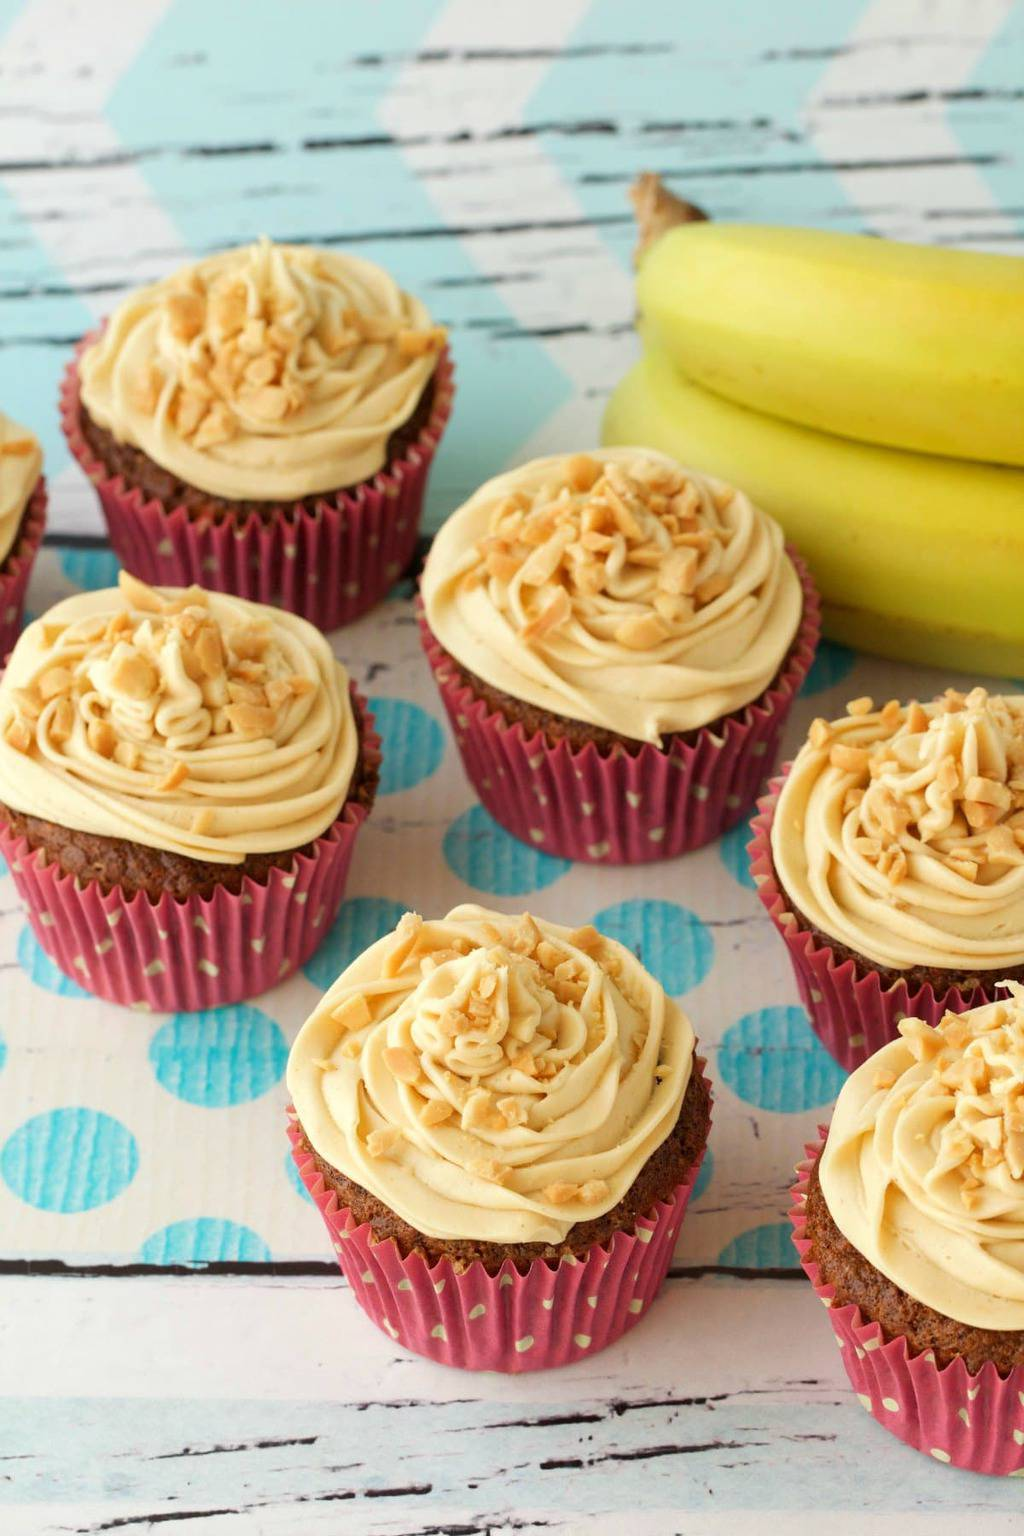 Vegan Banana Cupcakes with Peanut Butter Frosting. Moist and delicious! #vegan #lovingitvegan #bananacupcakes #dessert